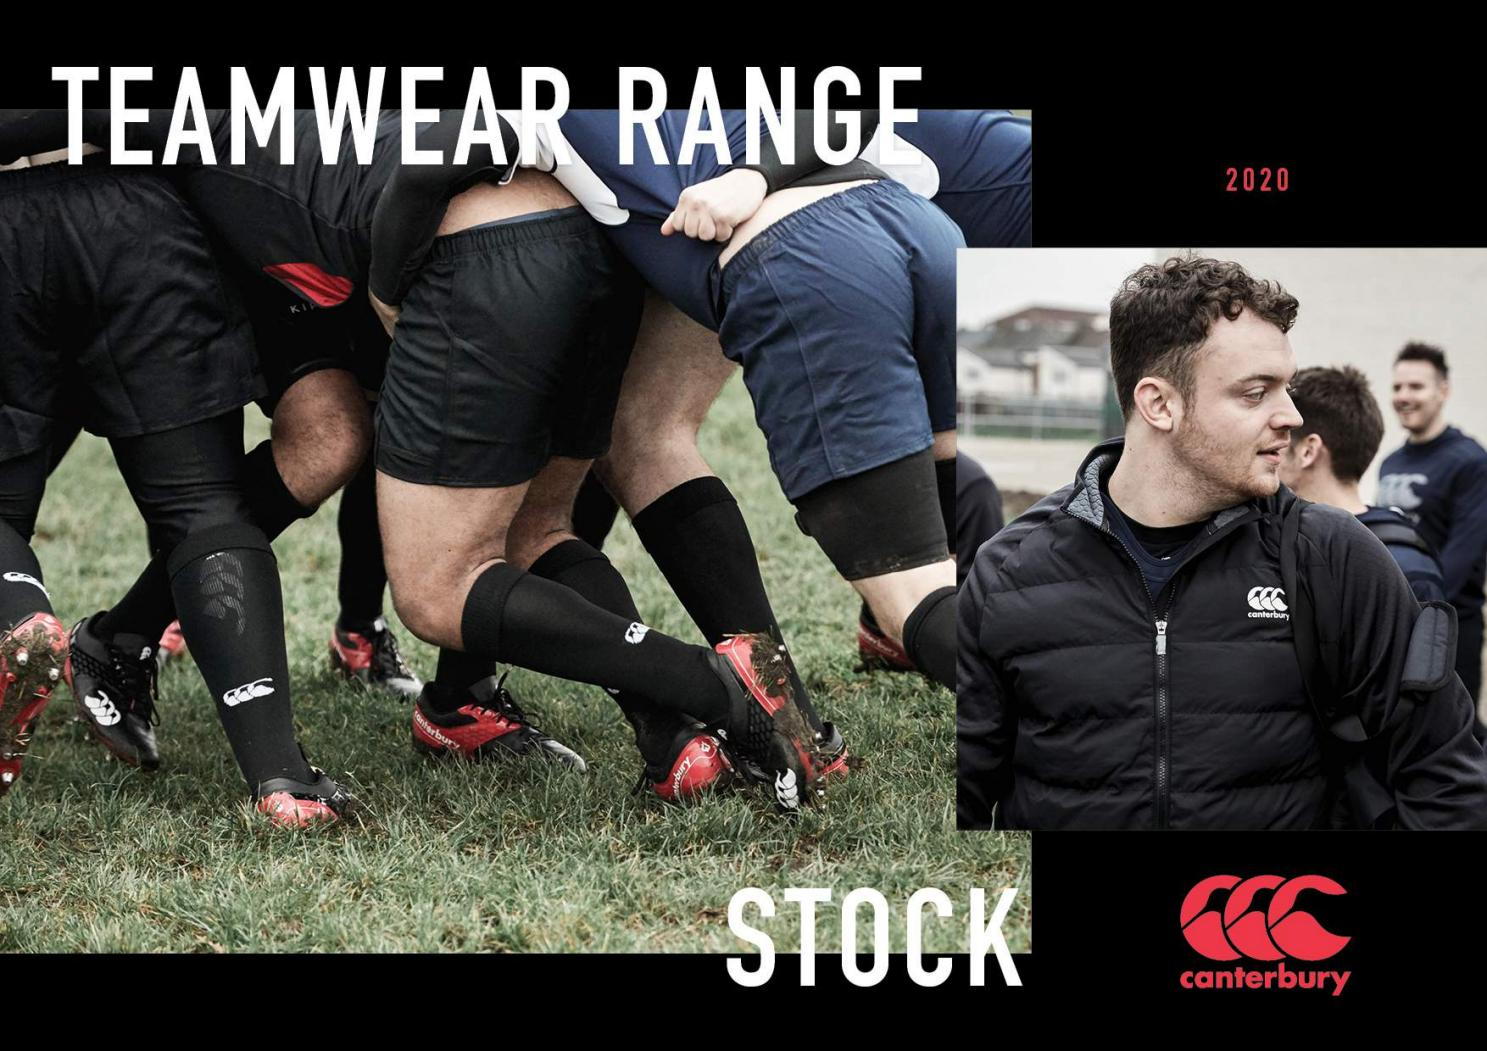 Canterbury - Coming Soon | www.therugbyshop.com